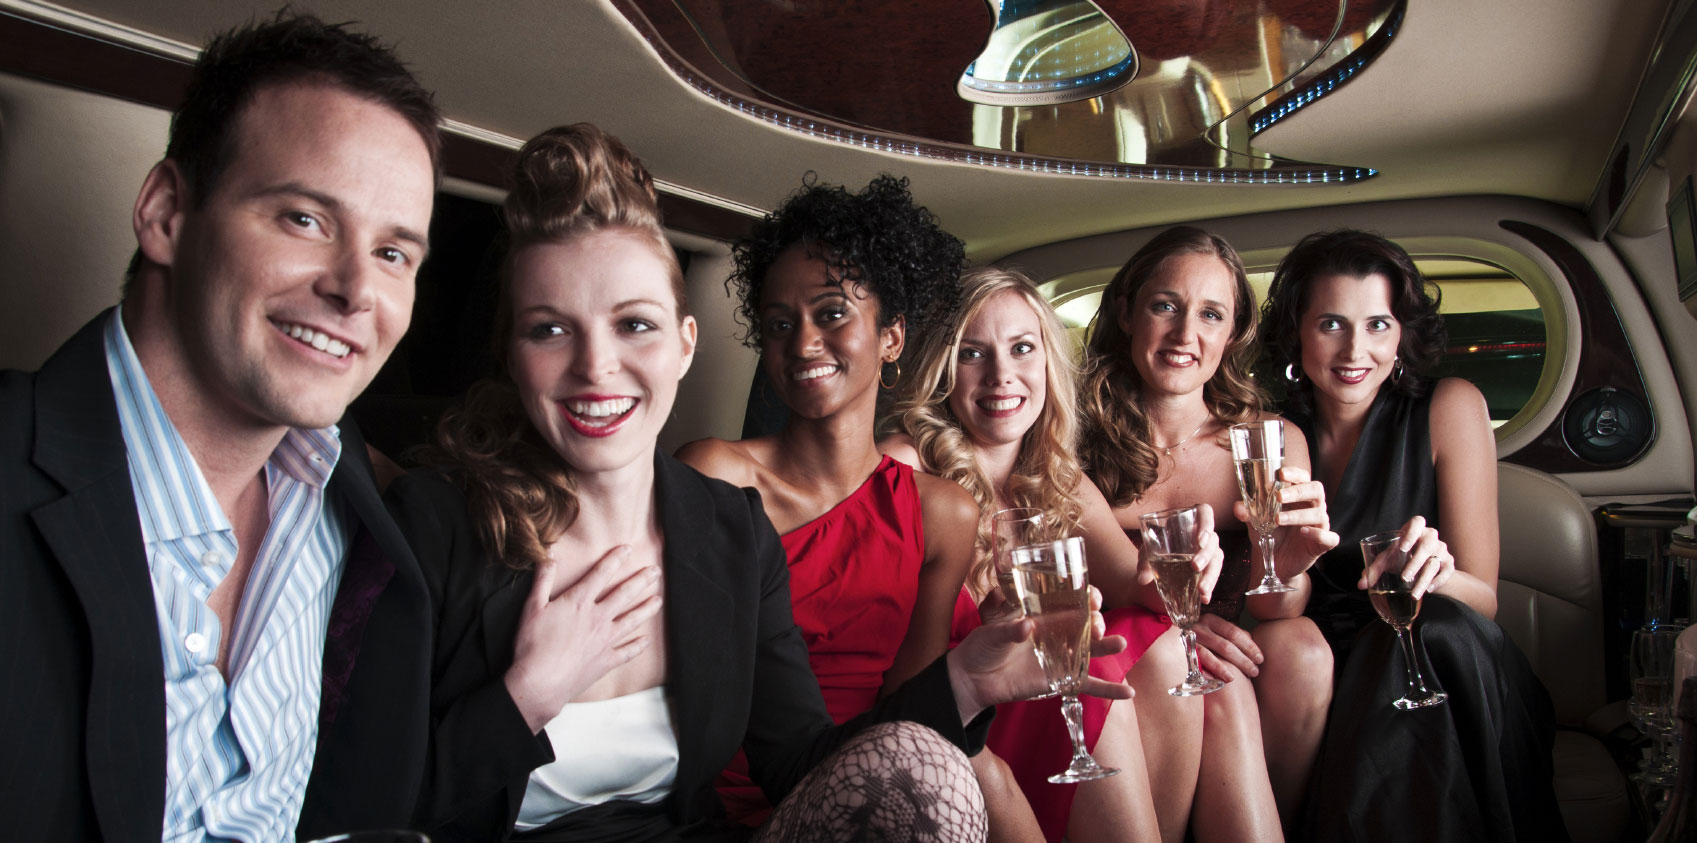 special occasions | overland park limo service, airport shuttle and